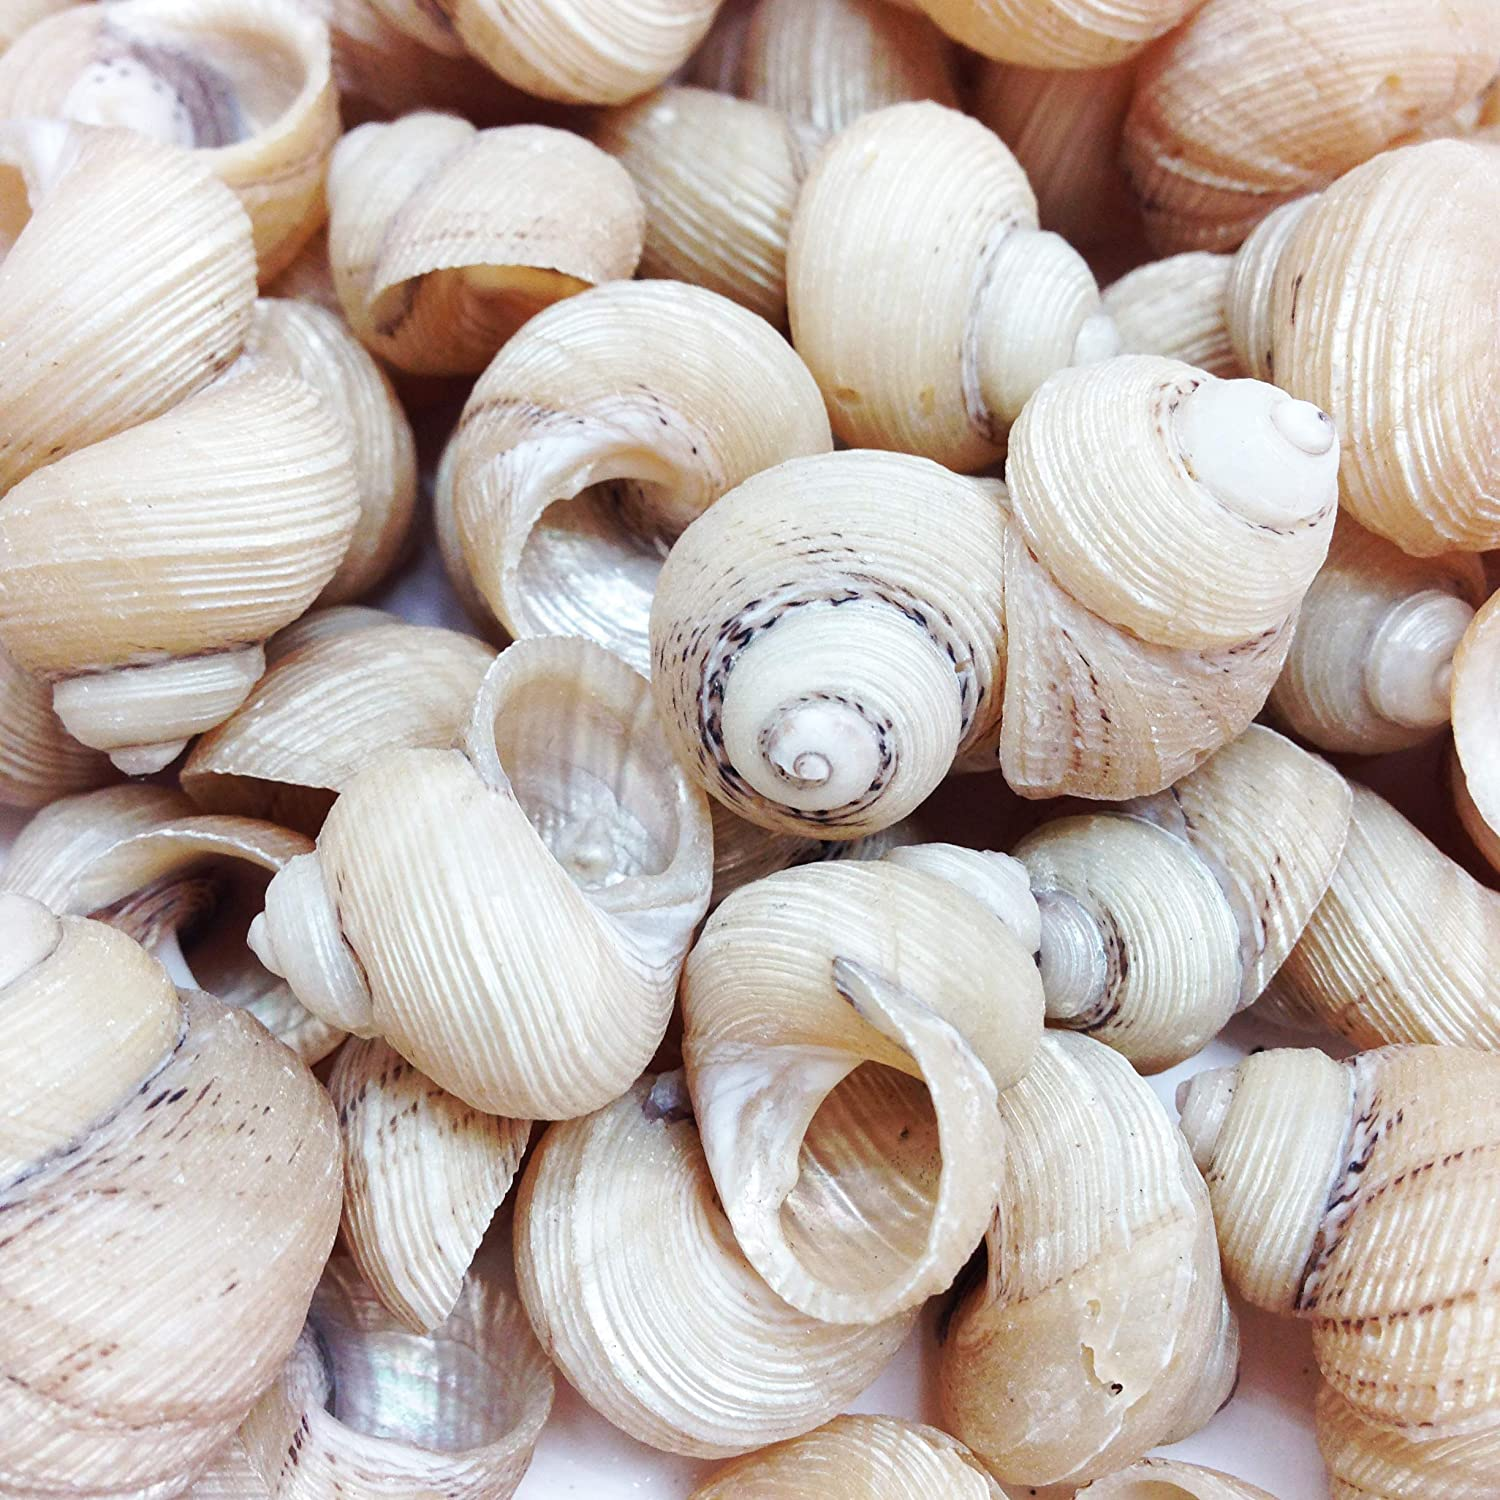 PEPPERLONELY Grooved Turbo Sea Shells, 8 OZ Apprx. 100+ PC Shells, 1/2Inch ~ 3/4 Inch